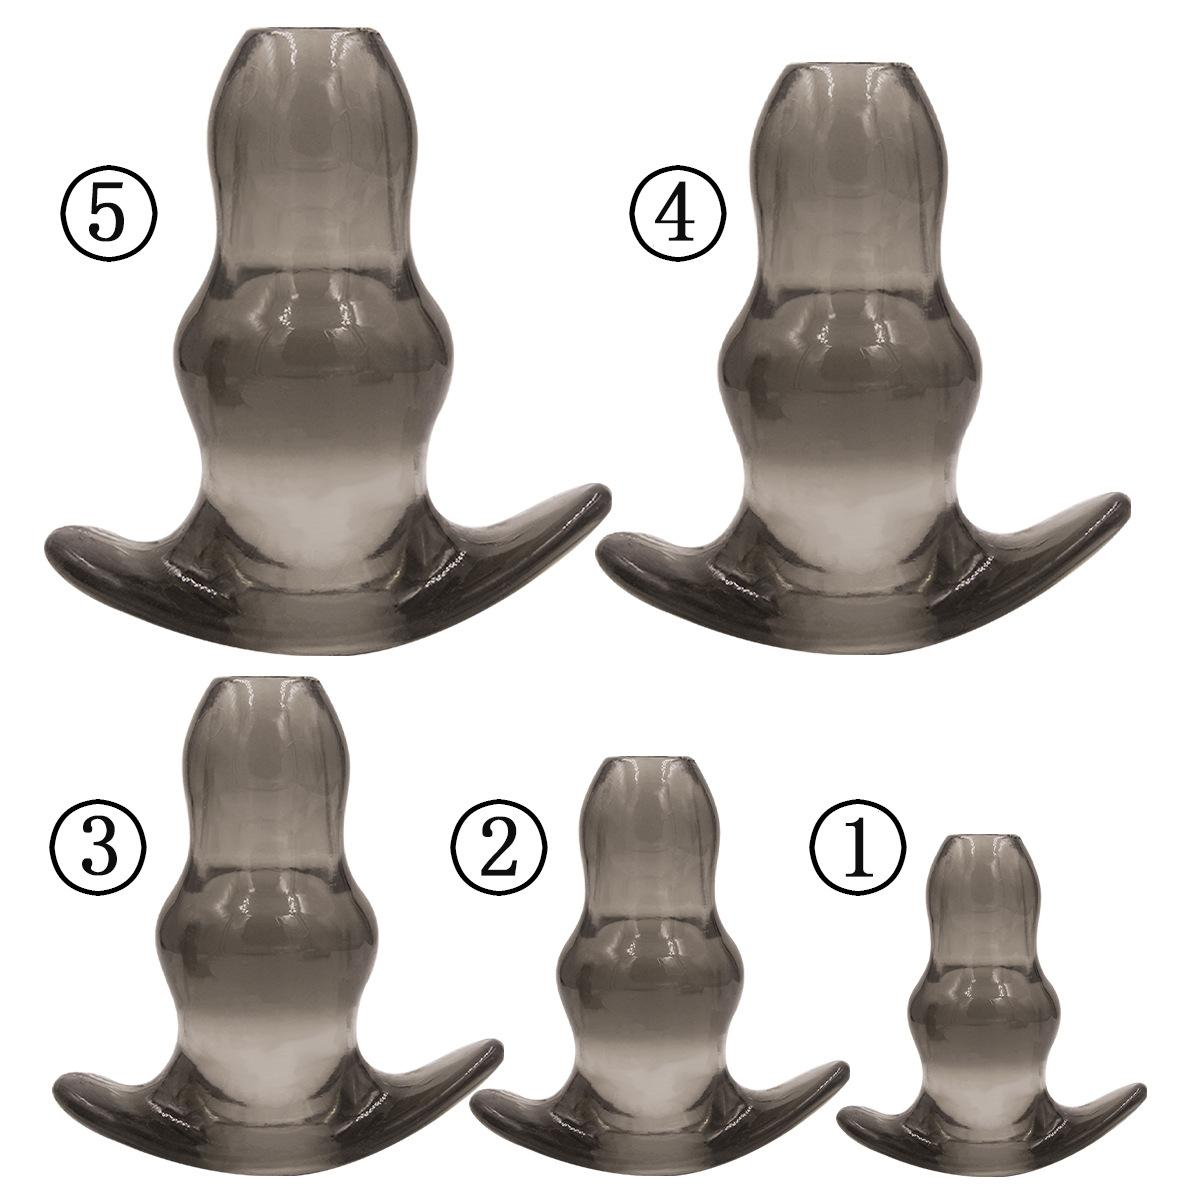 Anal Plug Masturbation Device Adult Sex Products Backyard Deluxe Chastity for Male and Female S